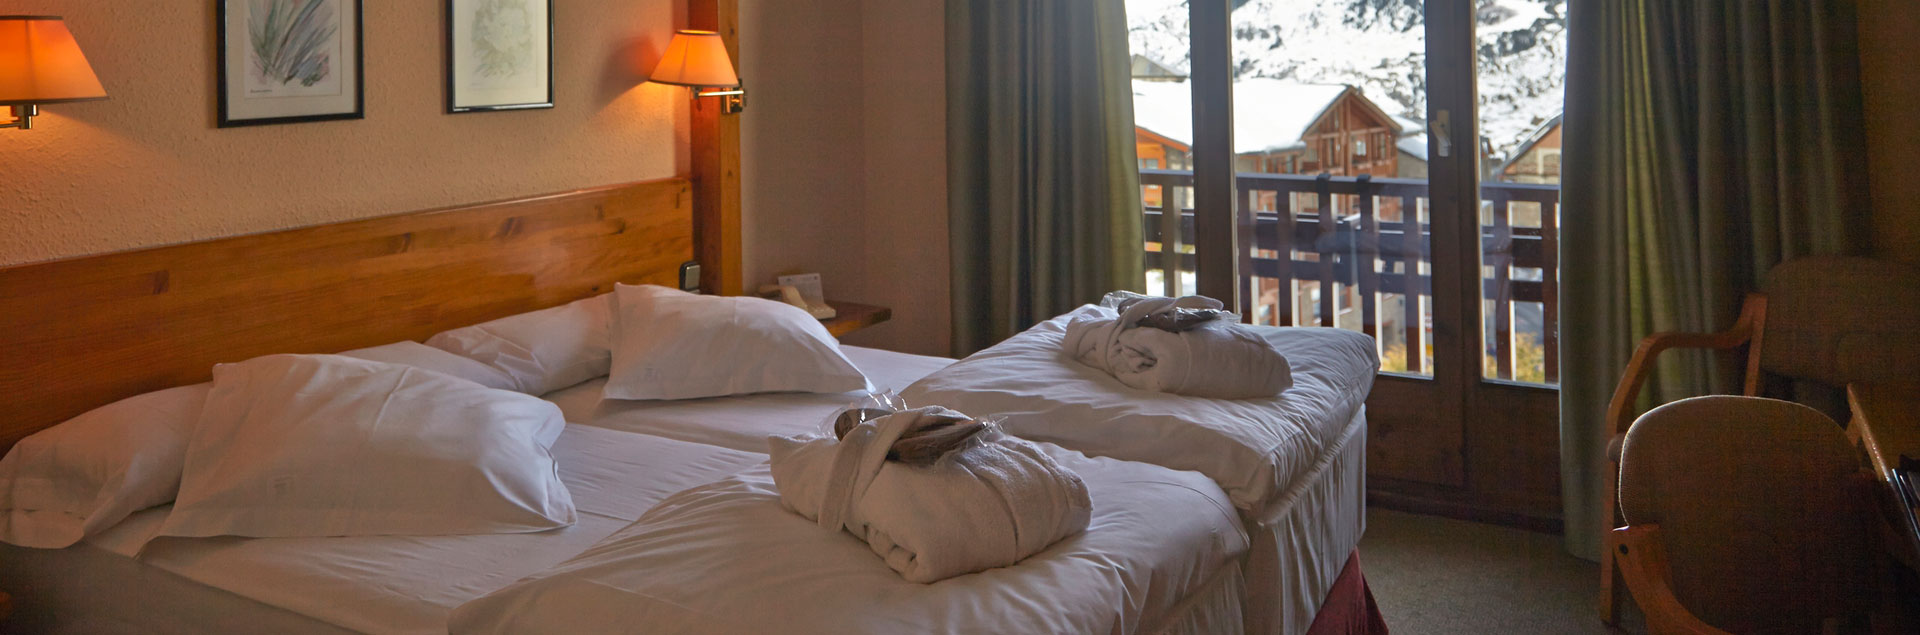 hotel in Soldeu with rooms with views